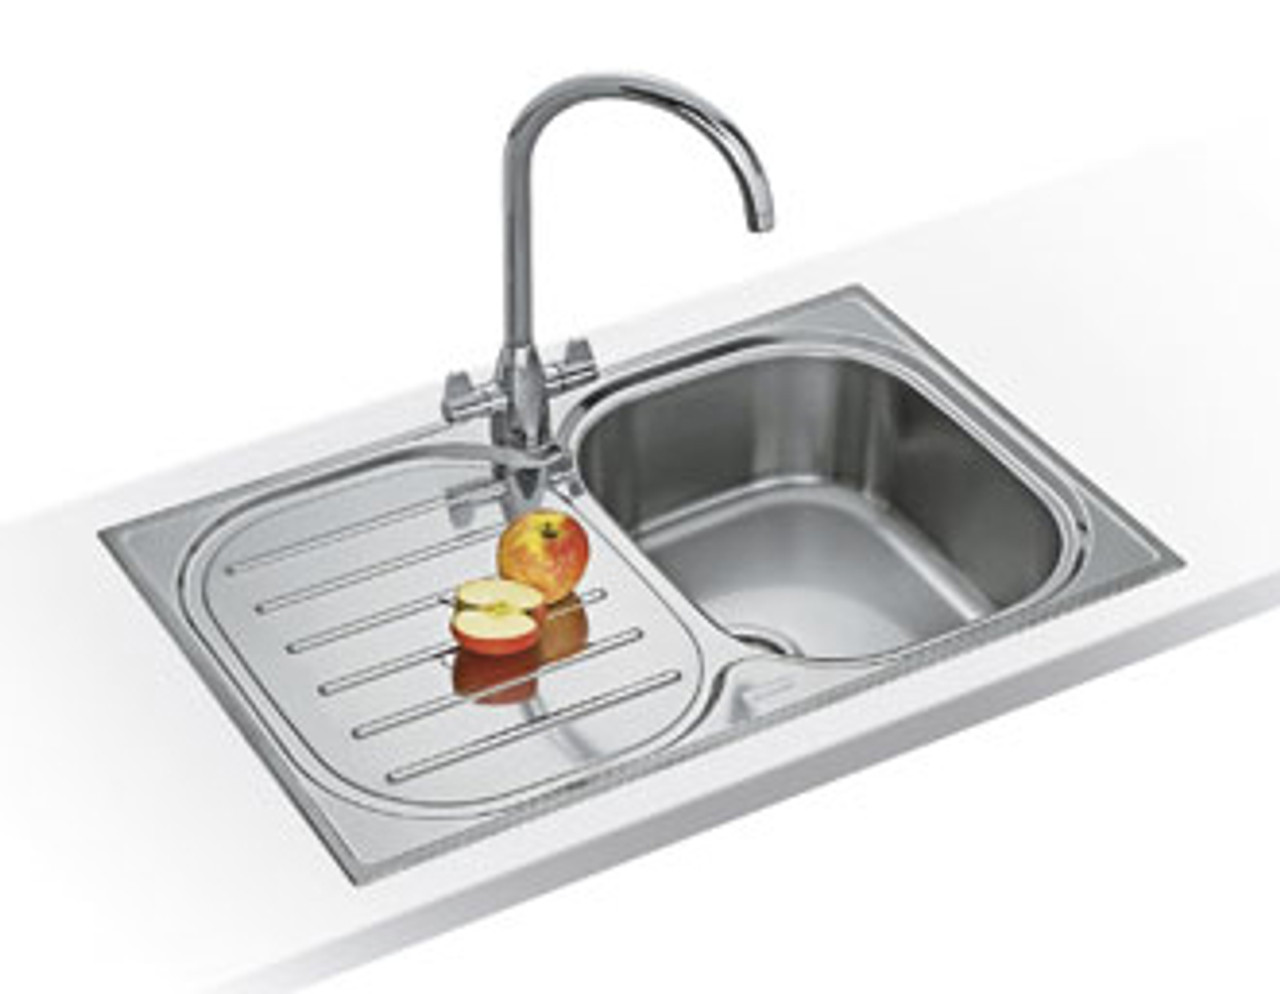 Franke Compact Plus Cpx P611 780 Stainless Steel Kitchen Sink